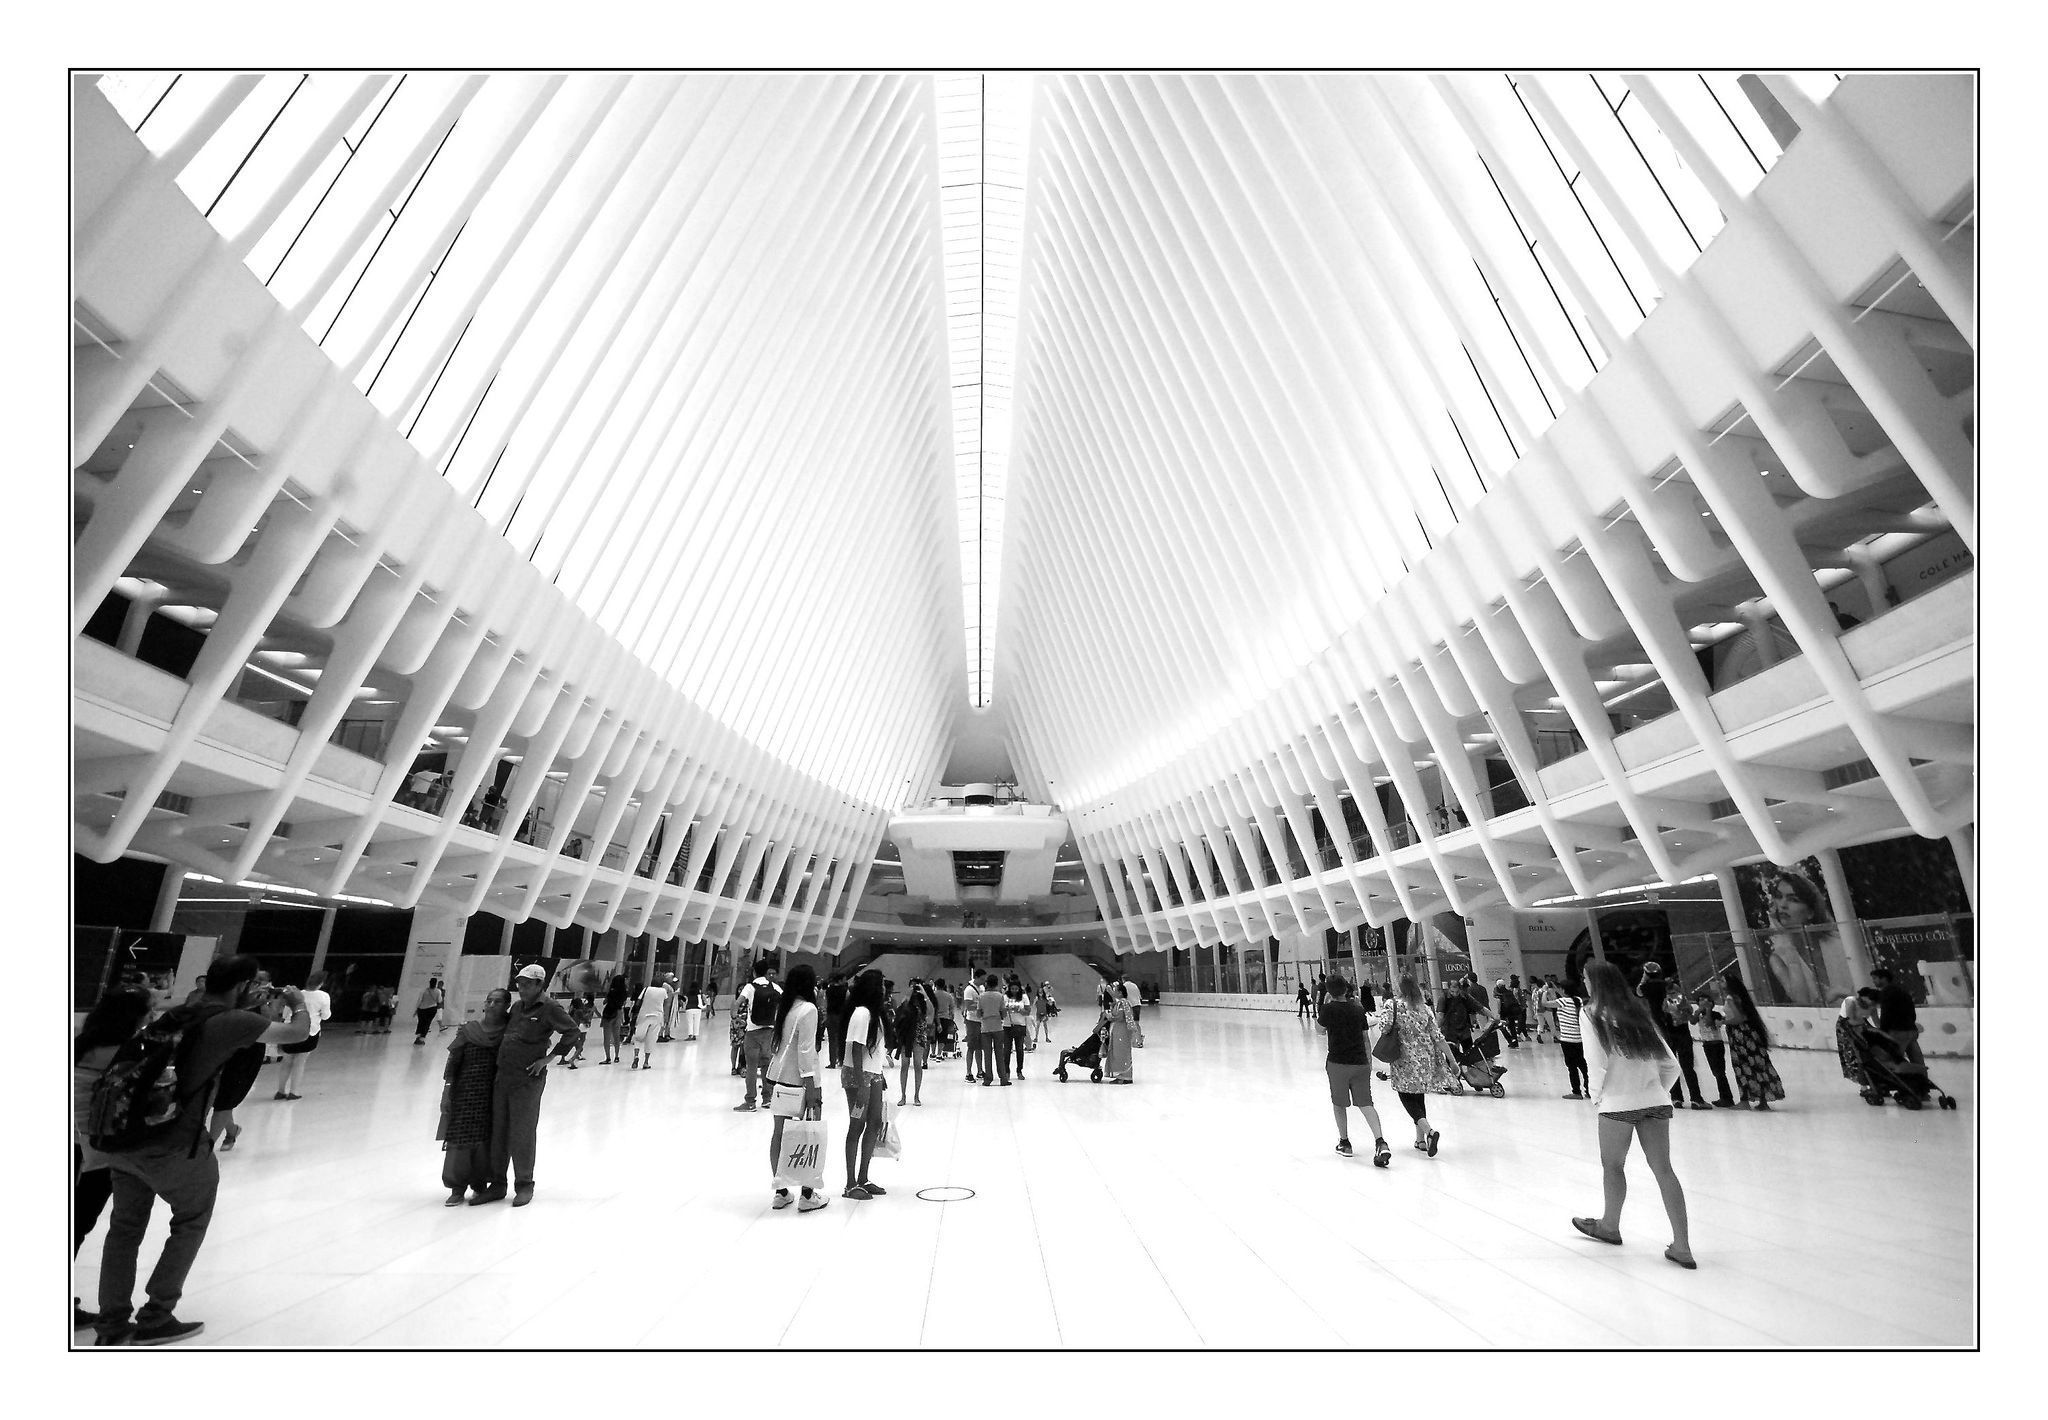 Bright Light #groundzeronyc The Oculus at Ground Zero NYC #groundzeronyc Bright Light #groundzeronyc The Oculus at Ground Zero NYC #groundzeronyc